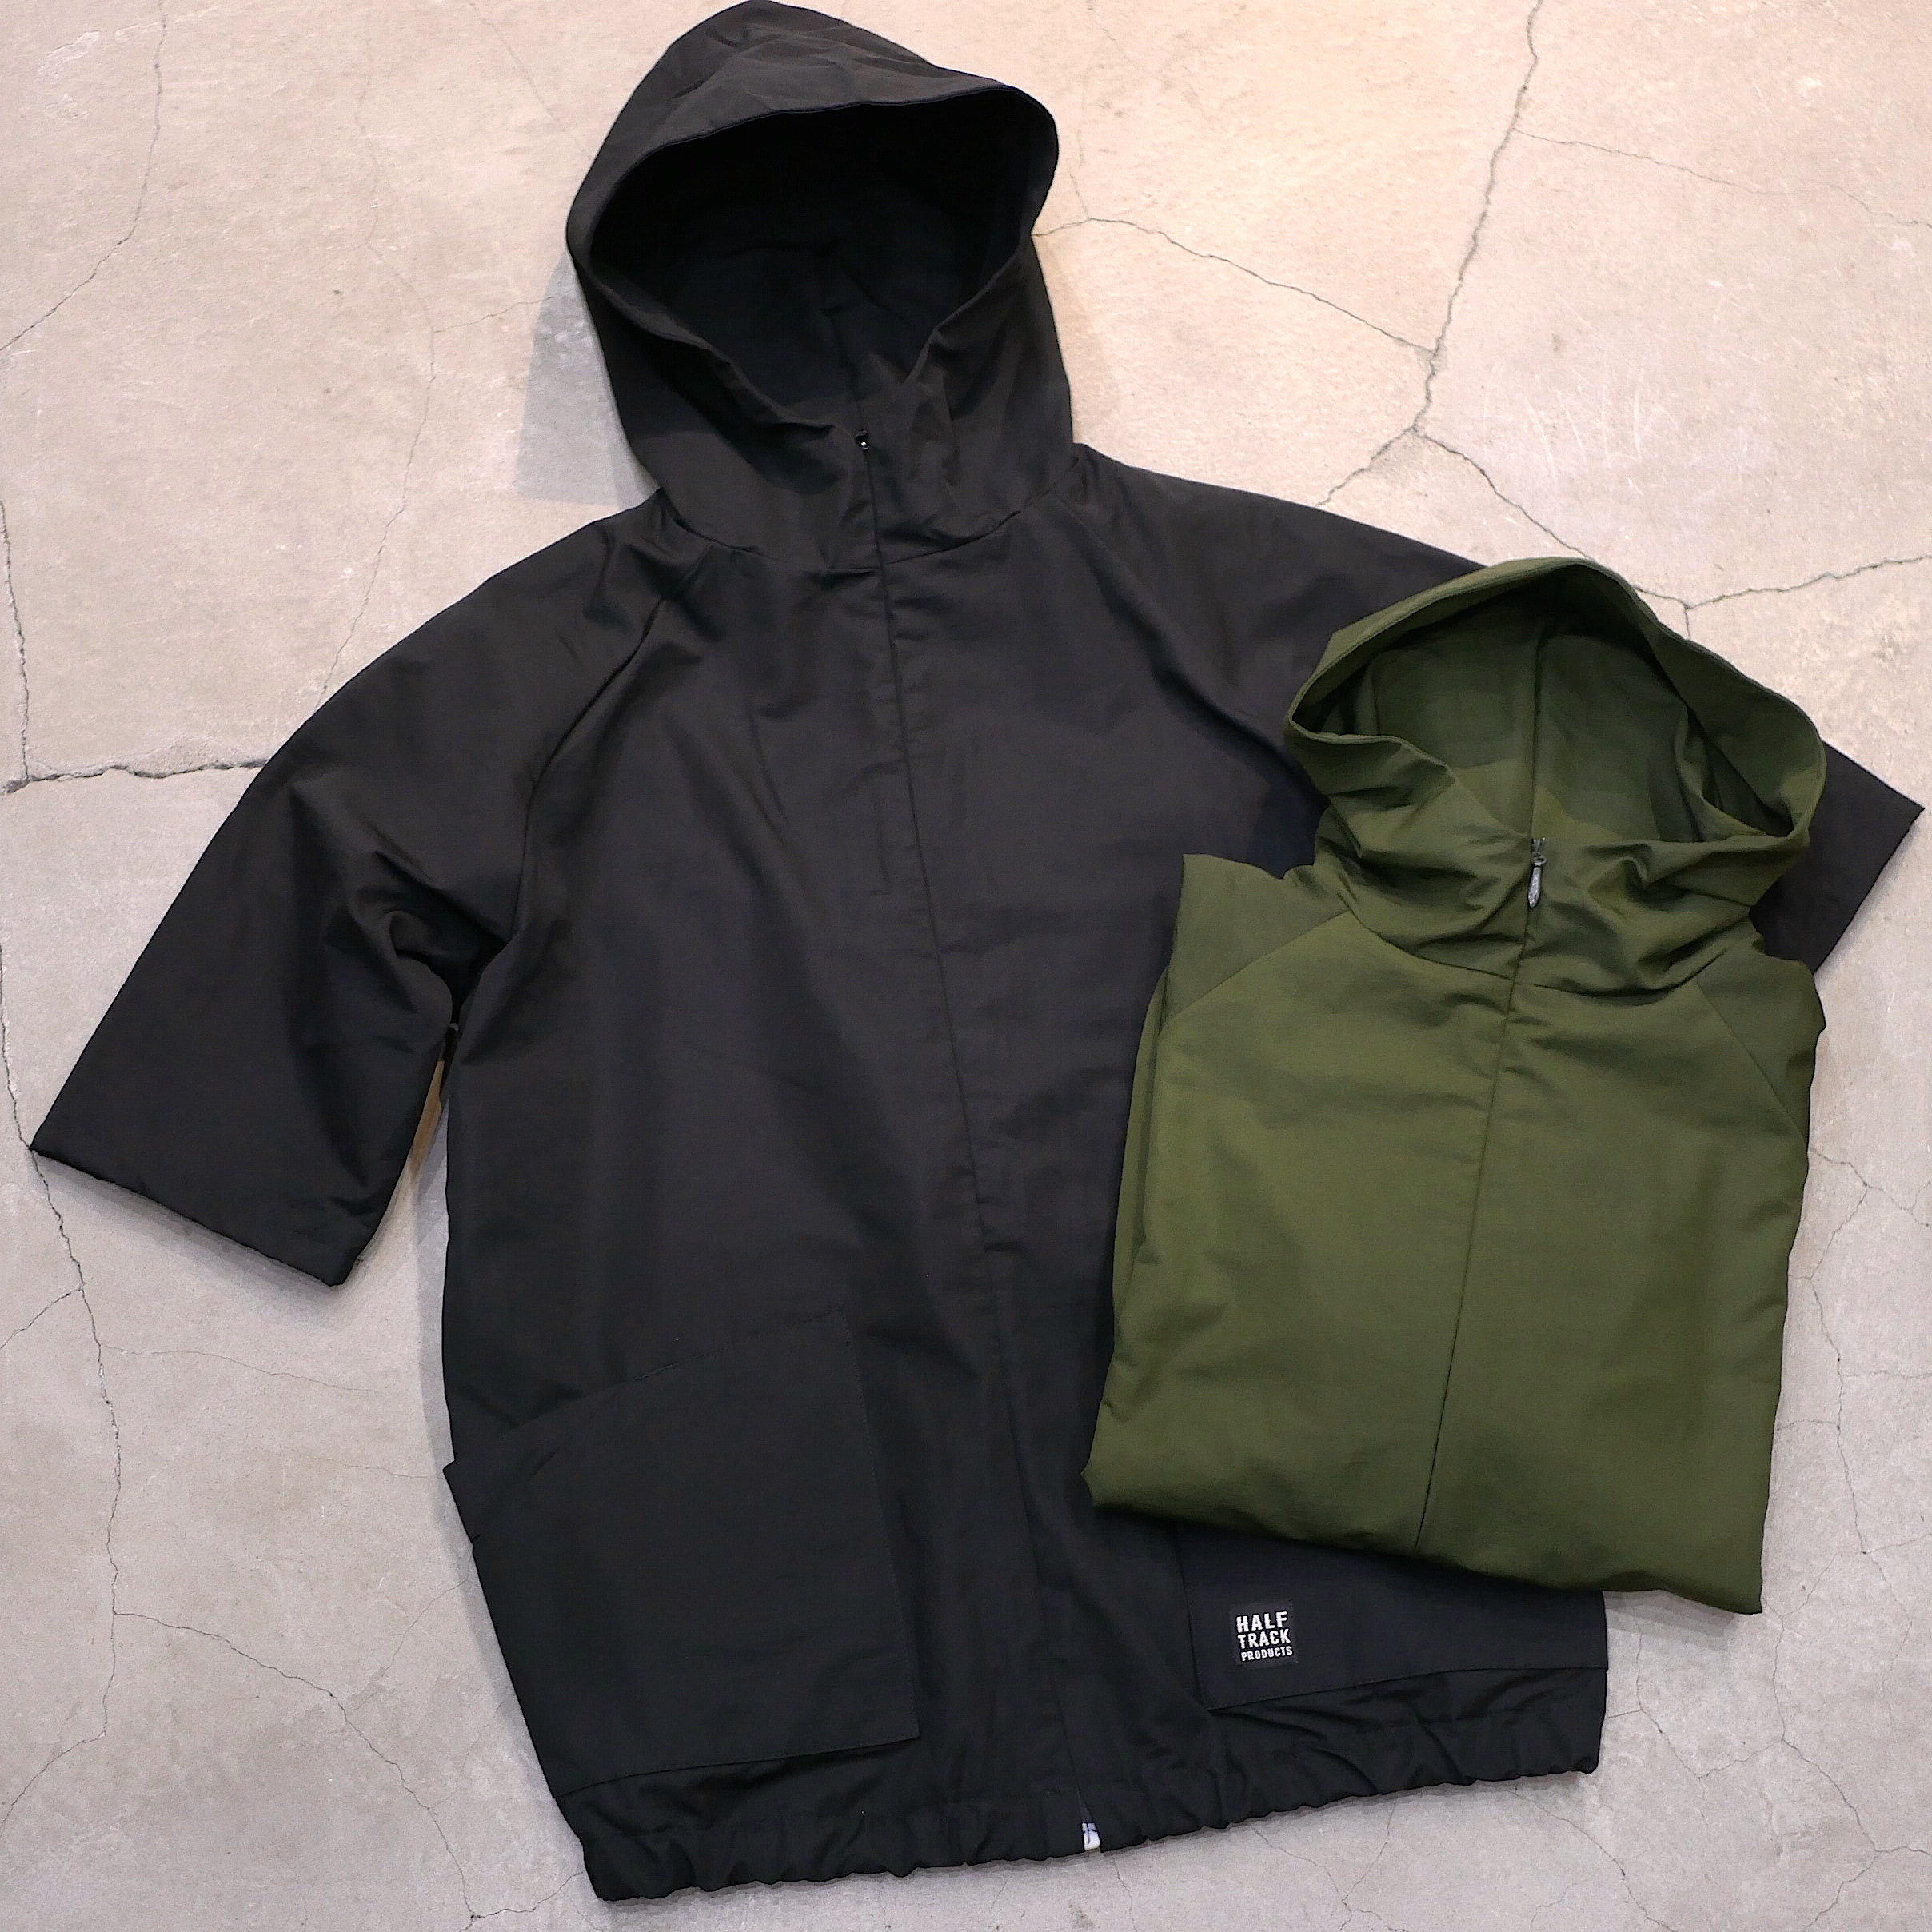 HALFTRACK PRODUCTS / HALF JKT